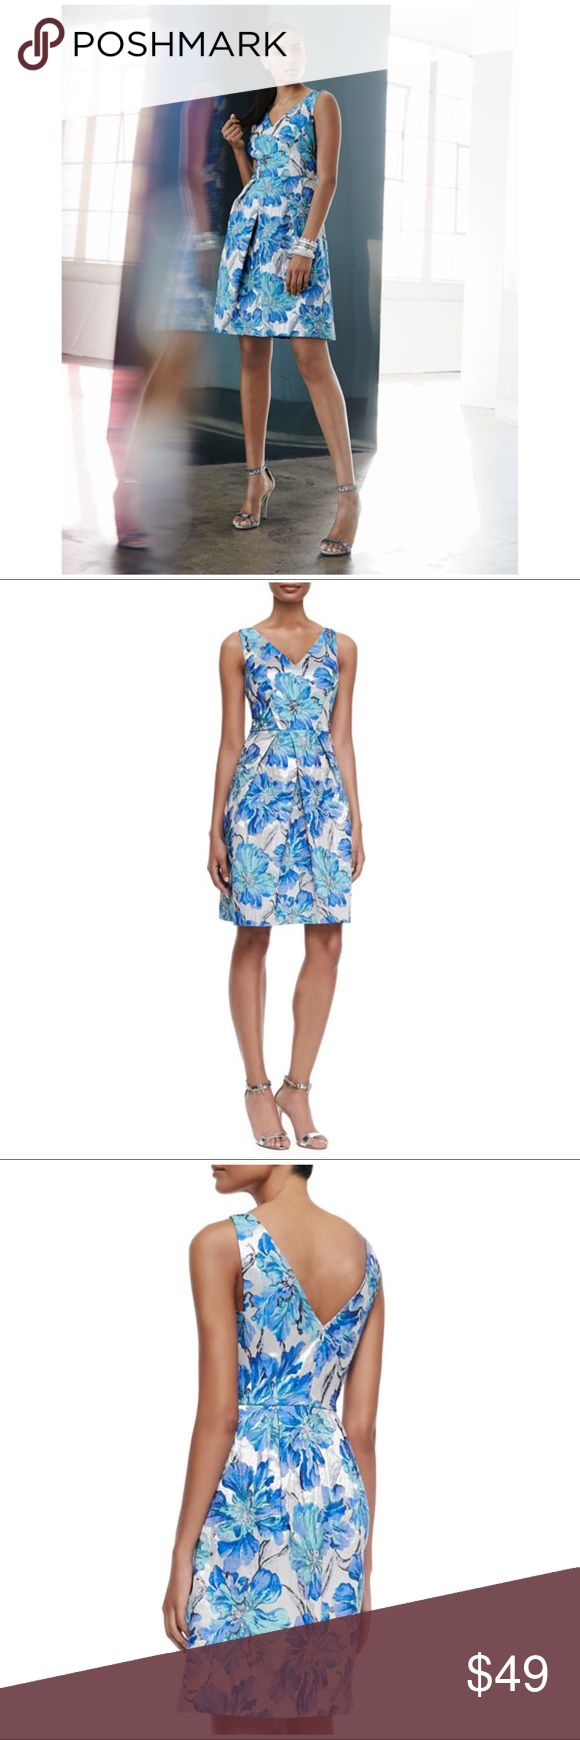 Kay Unger Floral-Brocade Cocktail Dress $550  Size 10. Originally $550. Still selling on the website.  Kay Unger Dresses